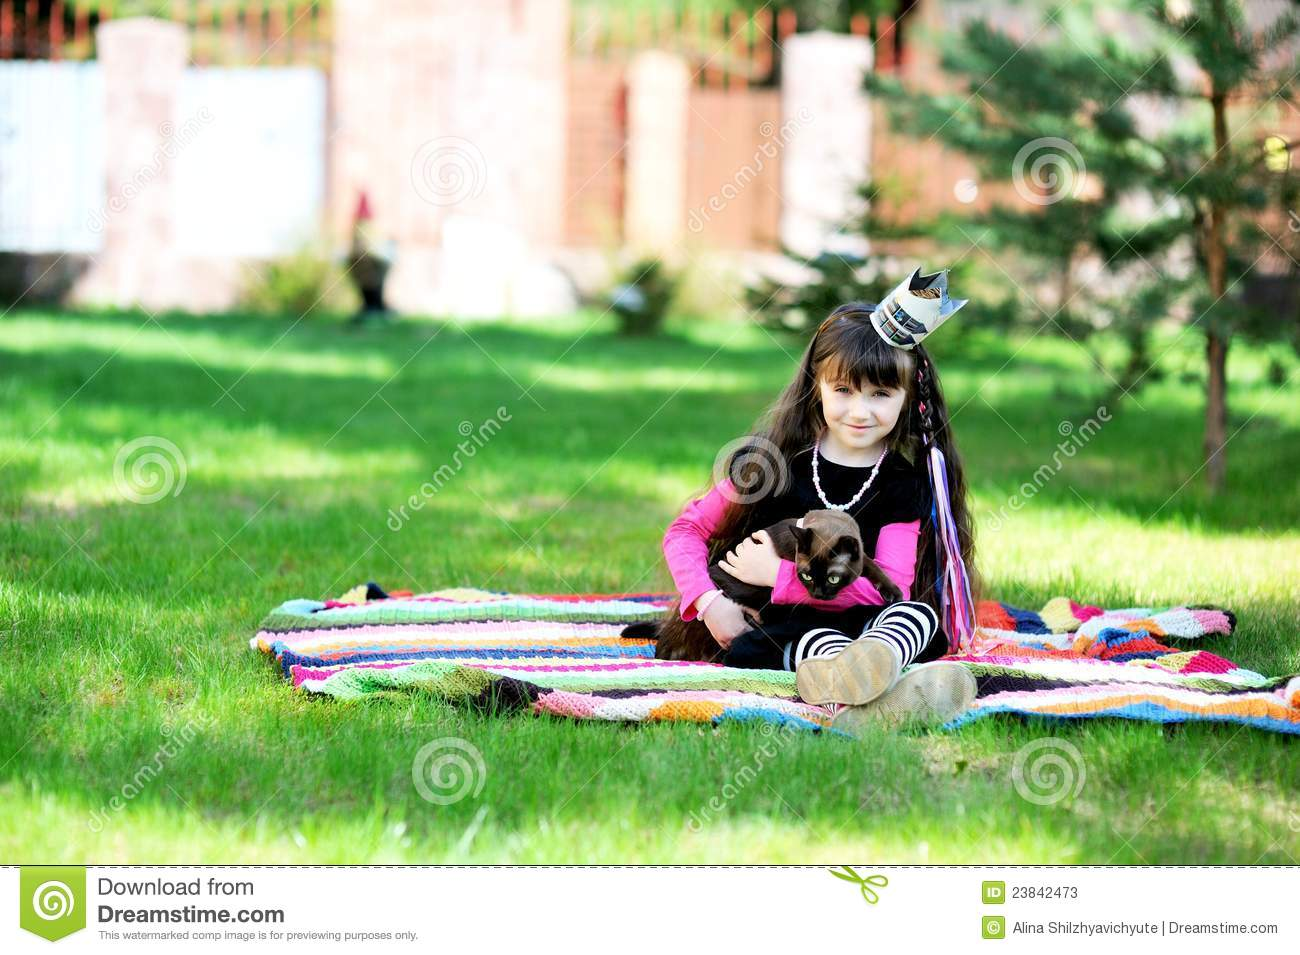 Little princess playing with burma cat outdoors